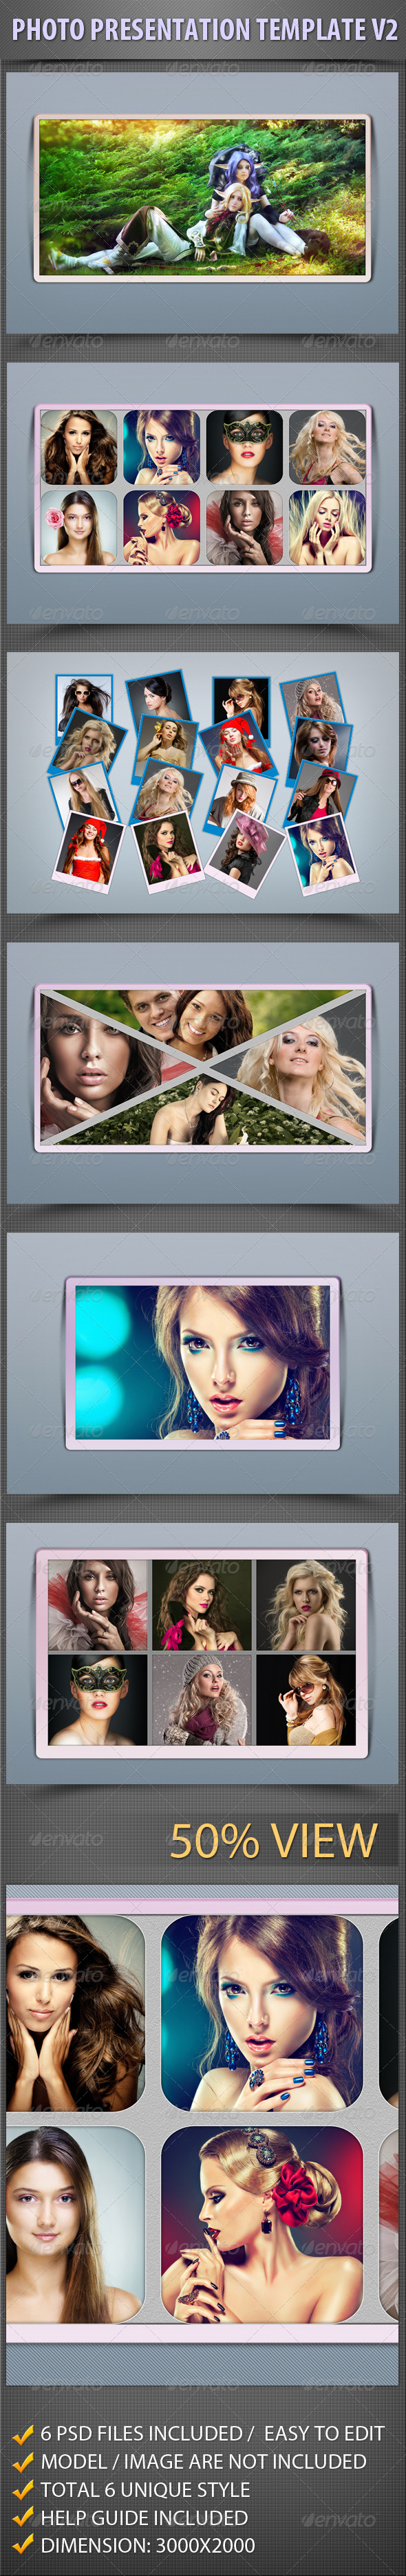 Photo Presentation Template V2 - Photo Templates Graphics